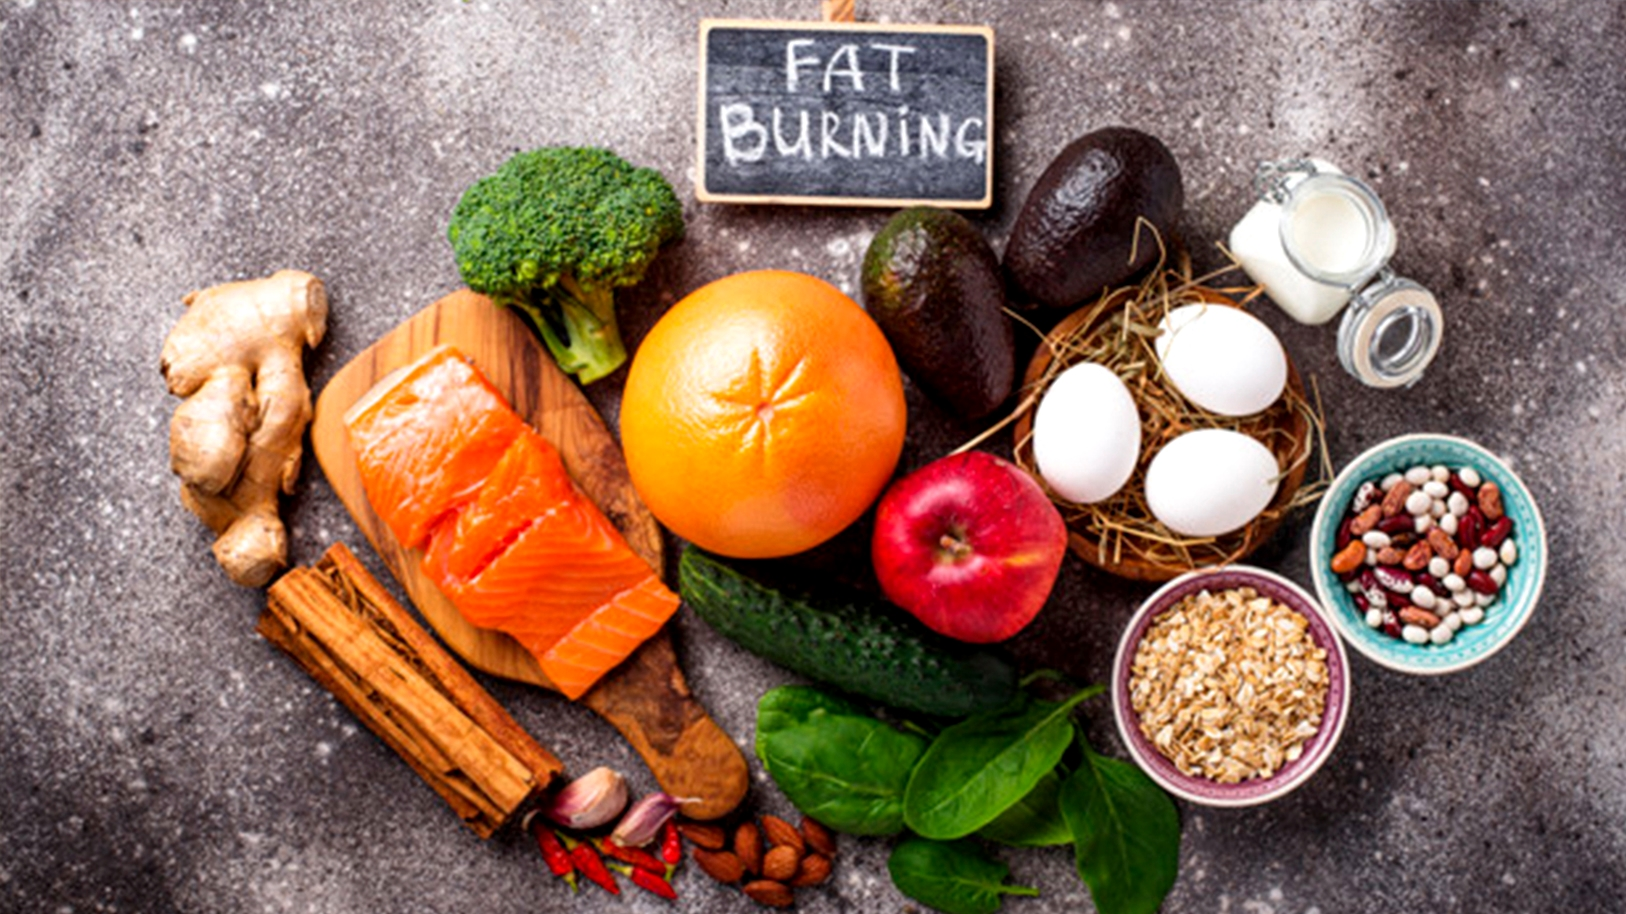 Healthy and Fat Burning Foods